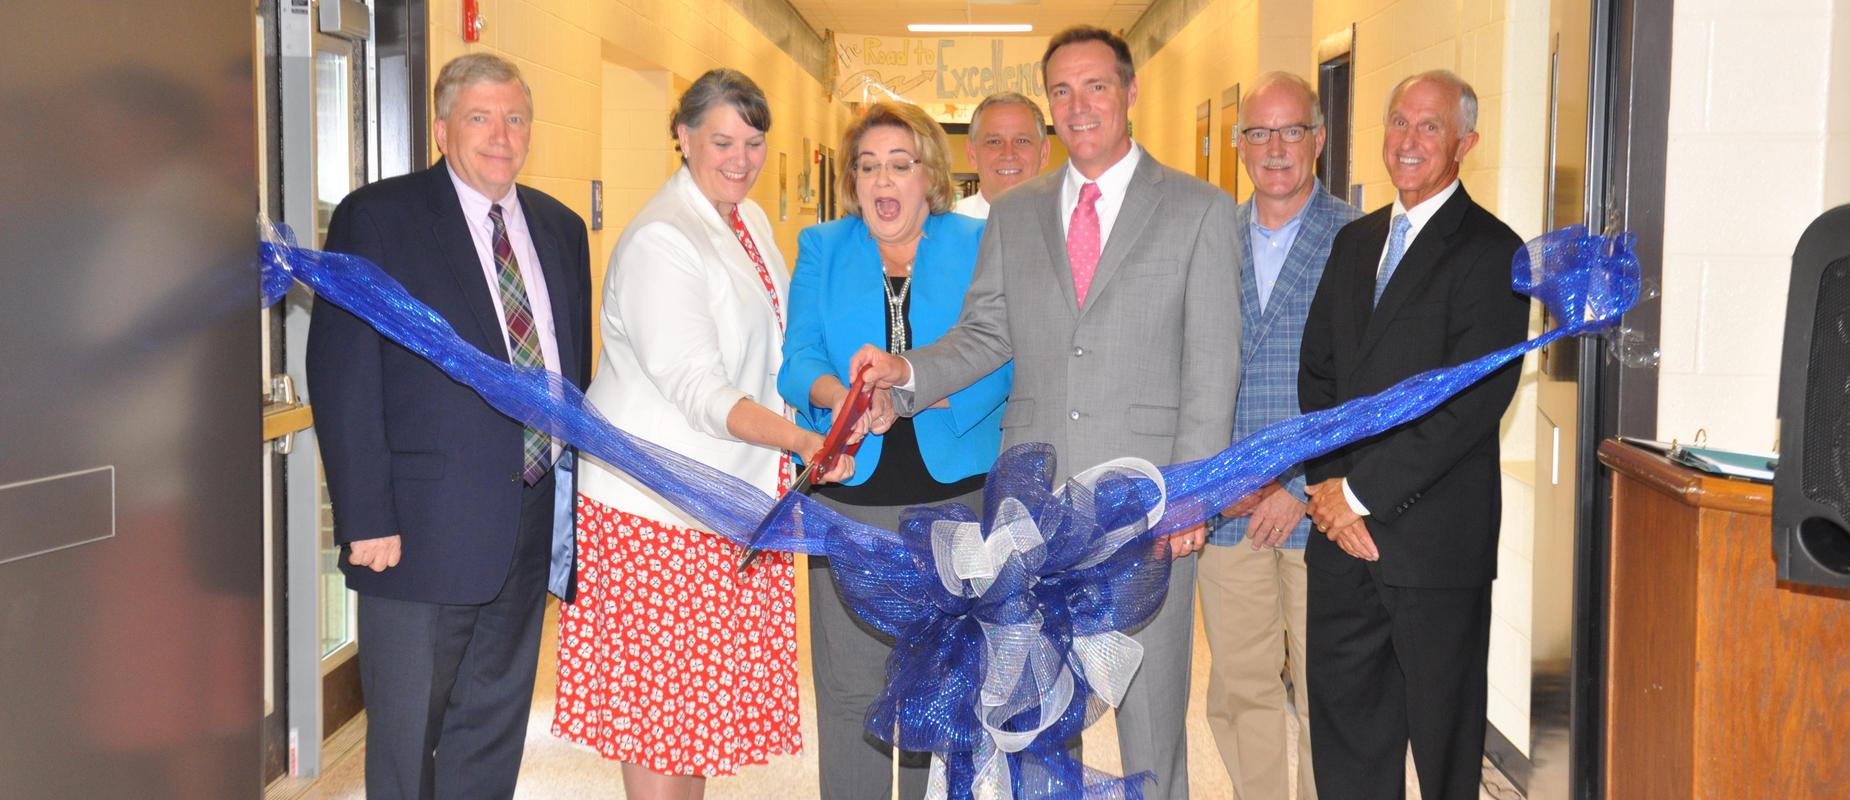 Kingston Opens New Wing